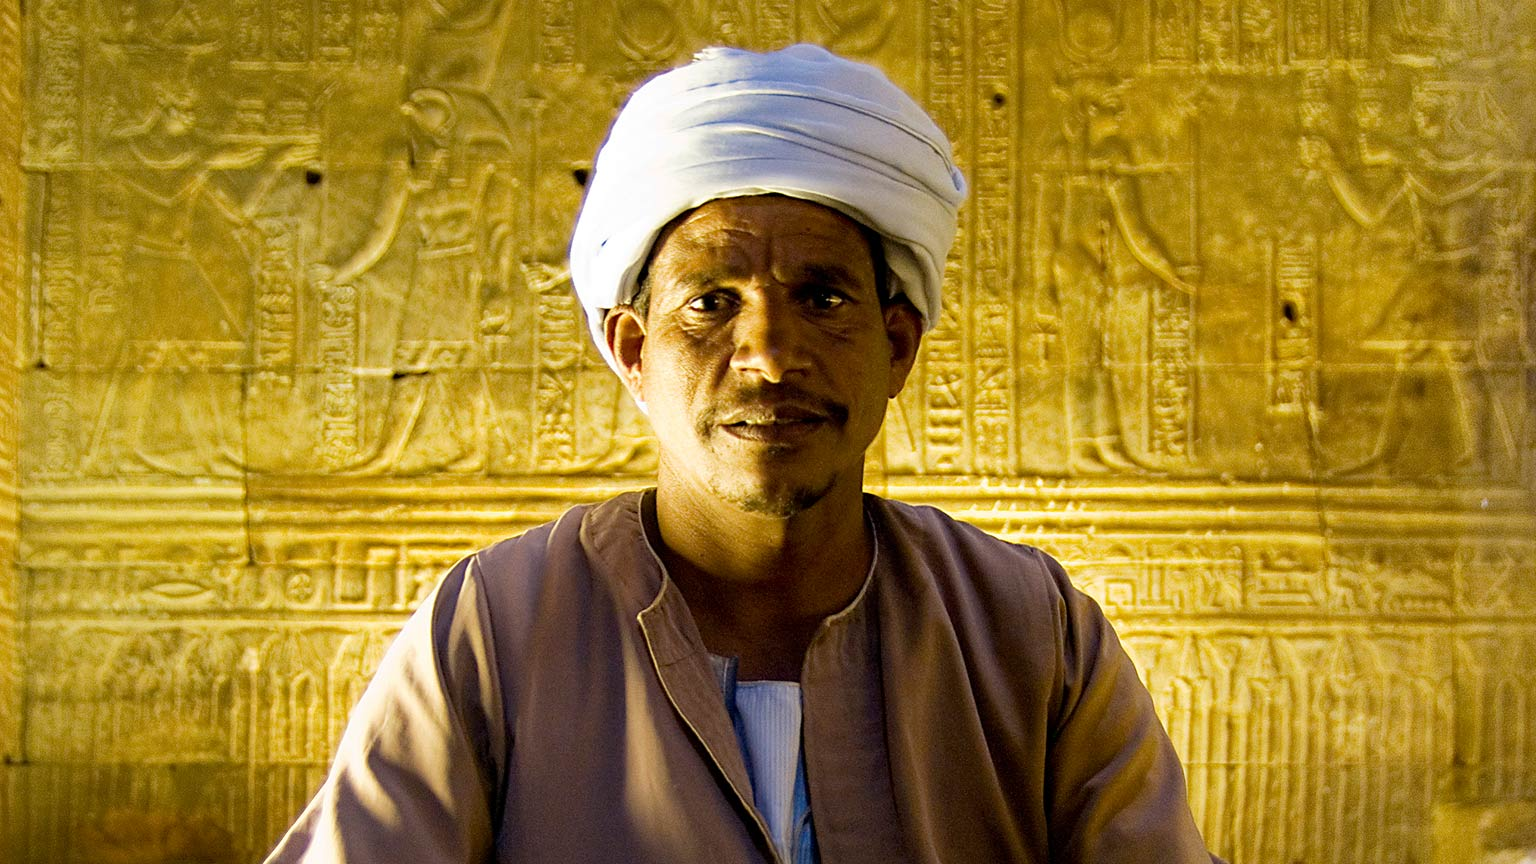 Egypt-Edfu-Temple-Guard-Leo-Tamburri